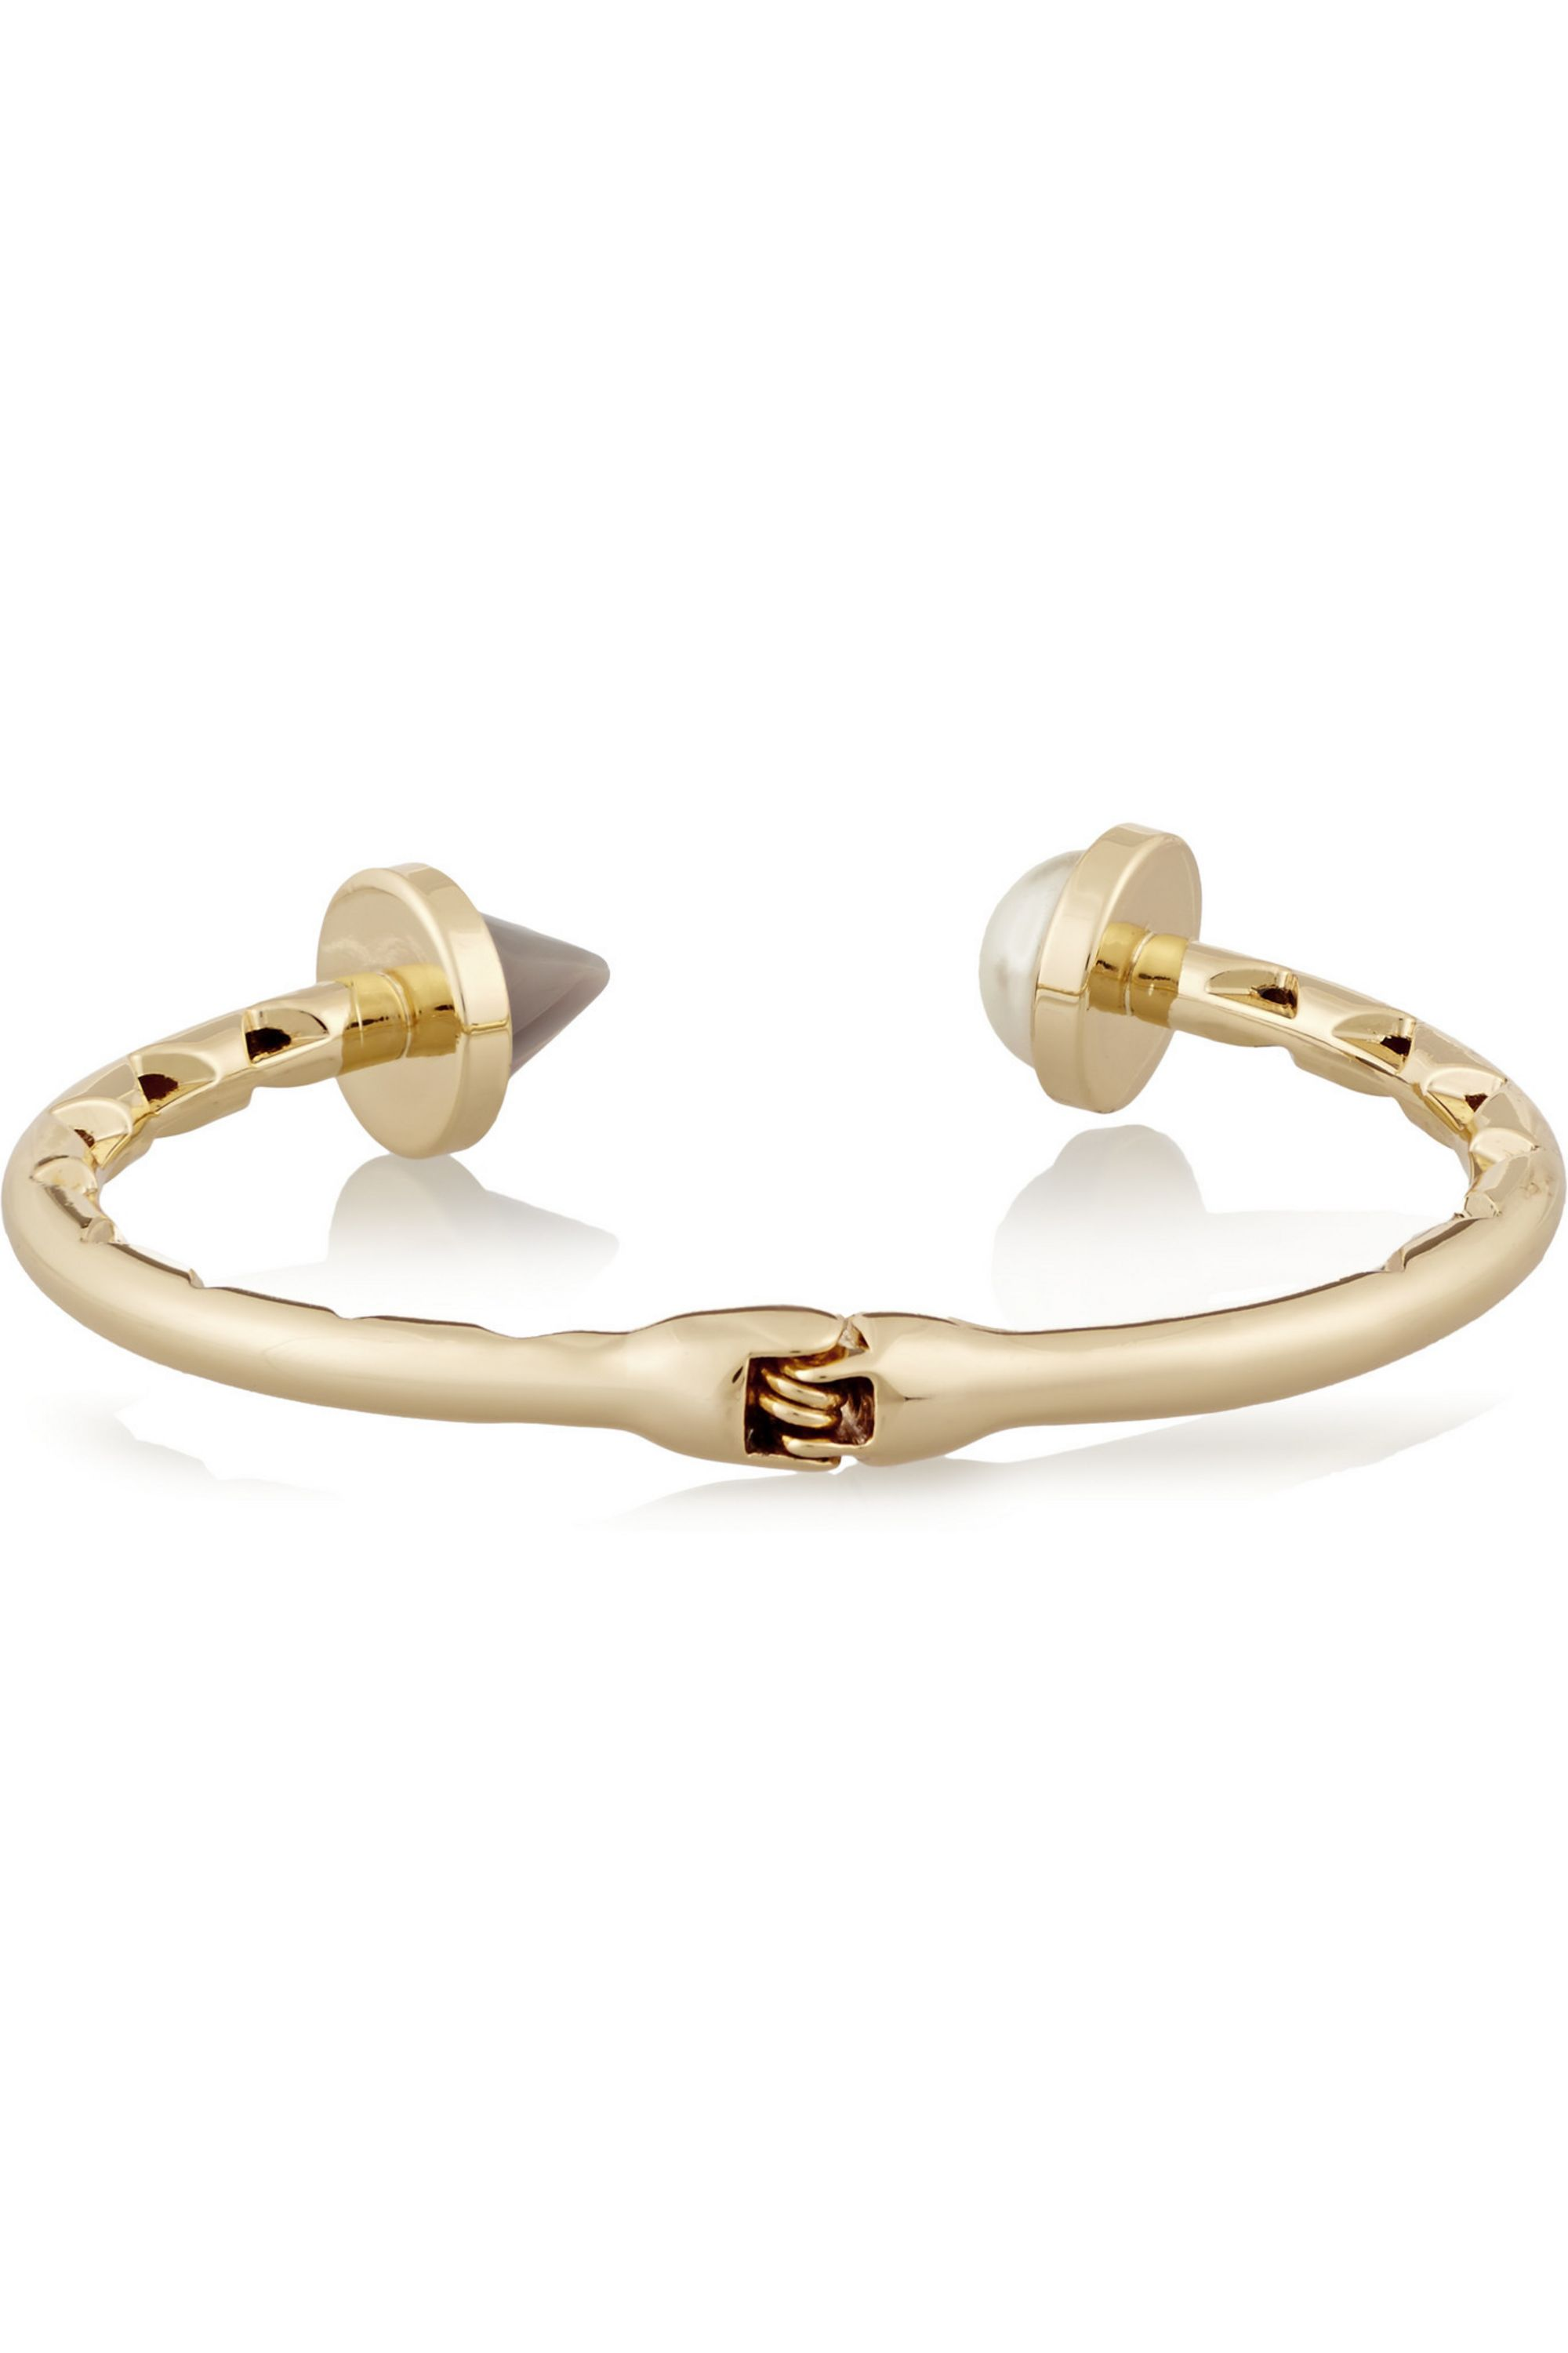 Eddie Borgo Bicone gold-plated, agate and faux pearl cuff